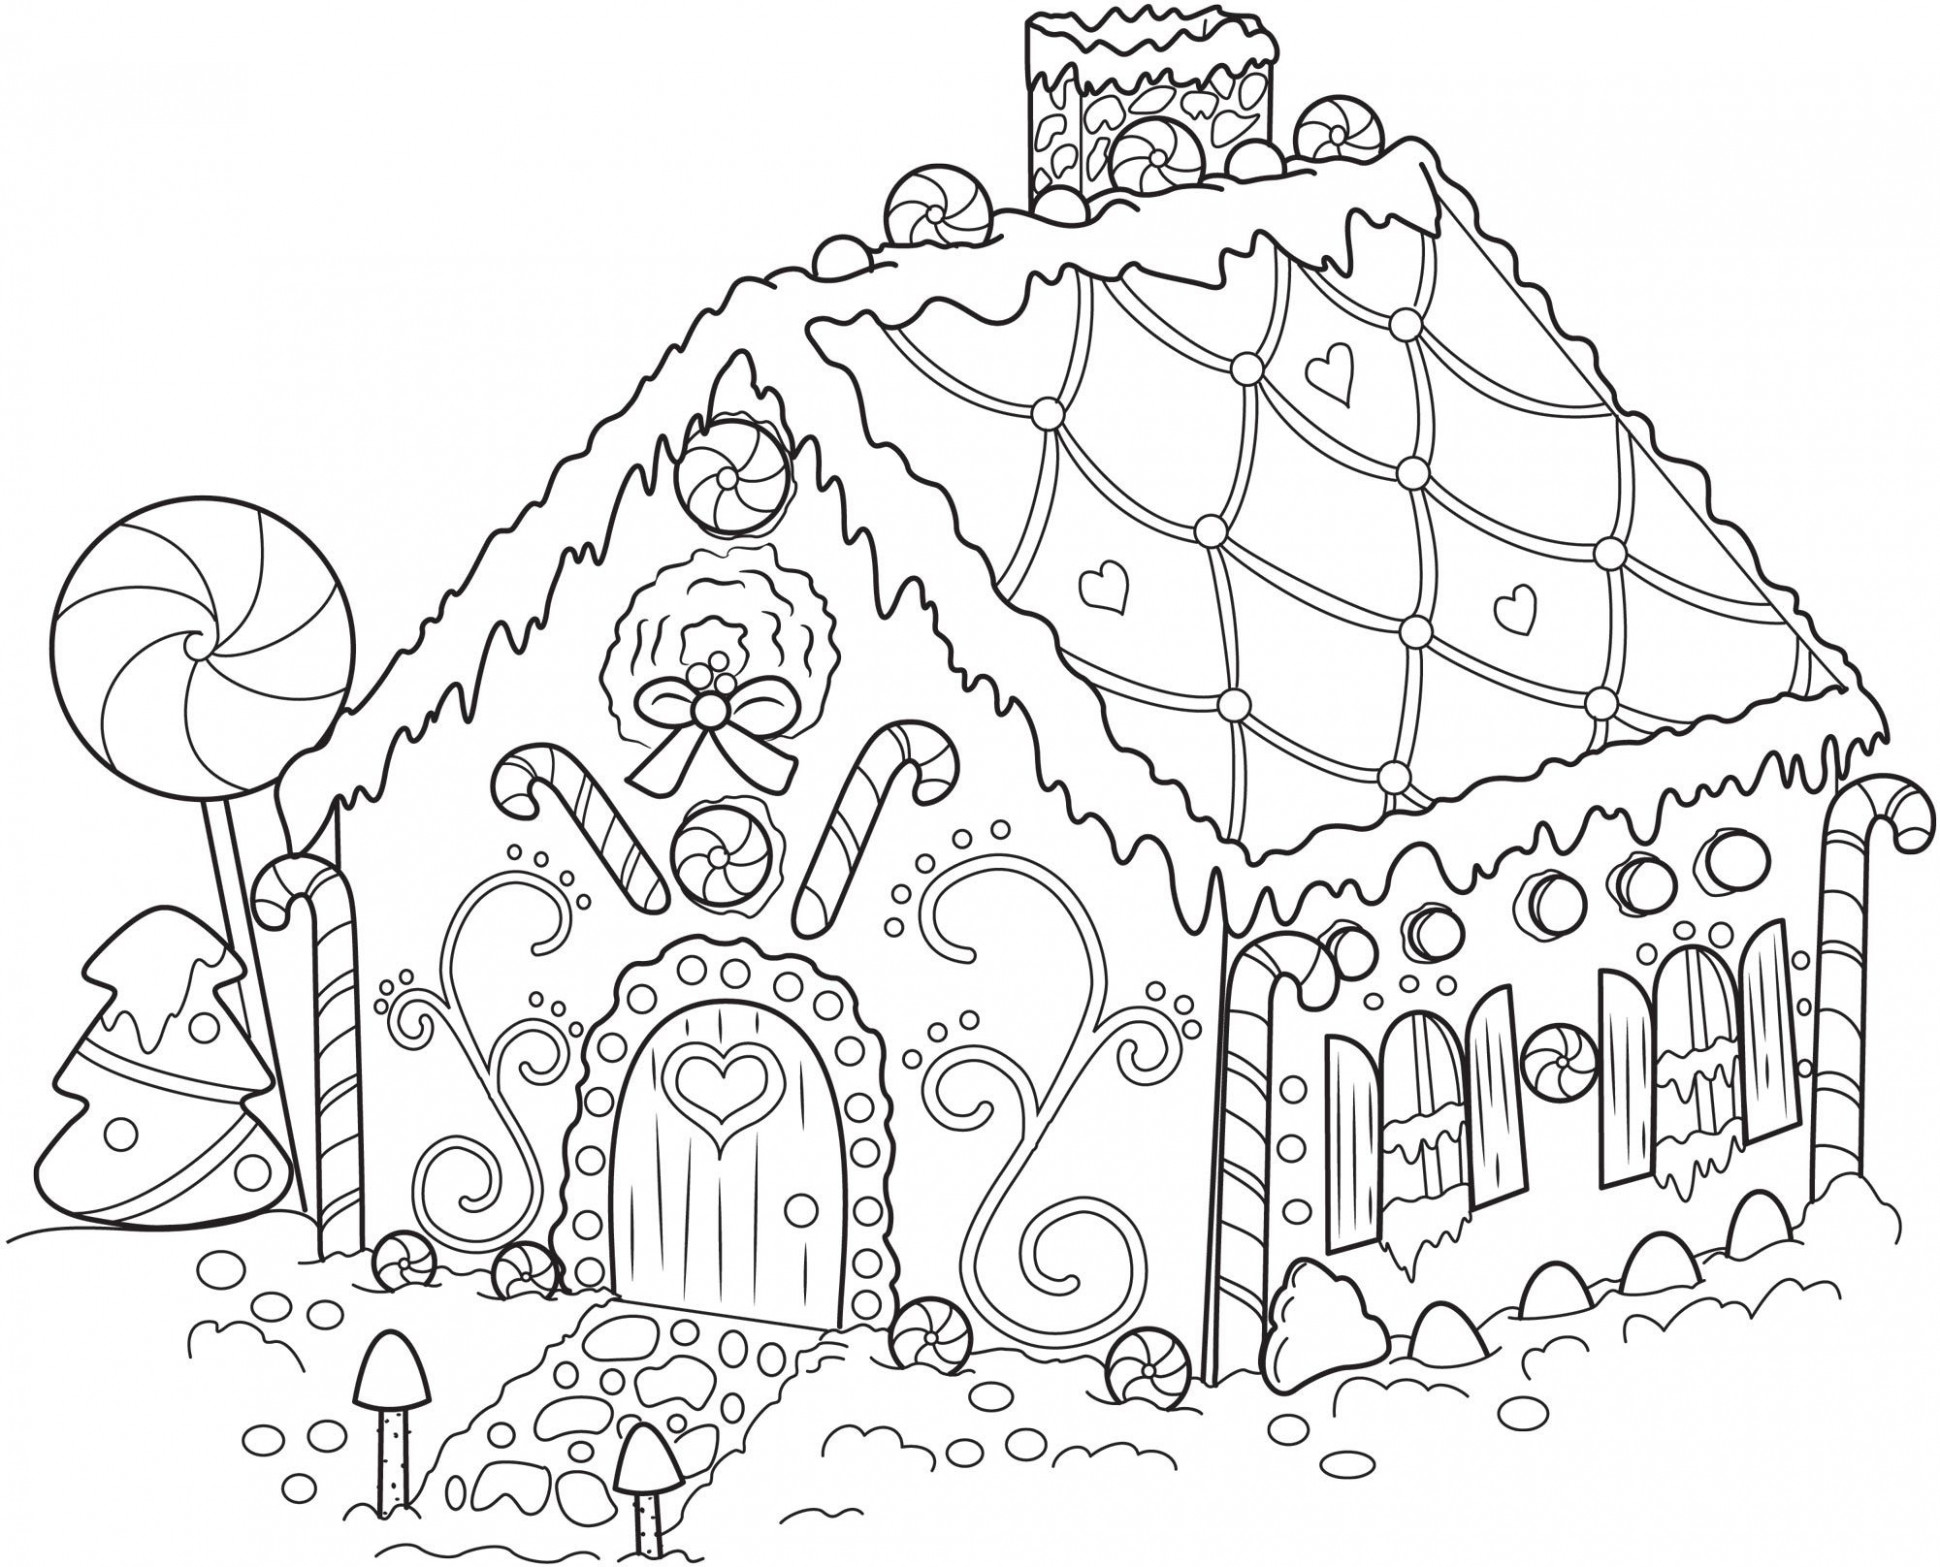 Luxury Free Christmas Coloring Pages Gingerbread House | Coloring Pages – Free Christmas Coloring Pages Gingerbread House